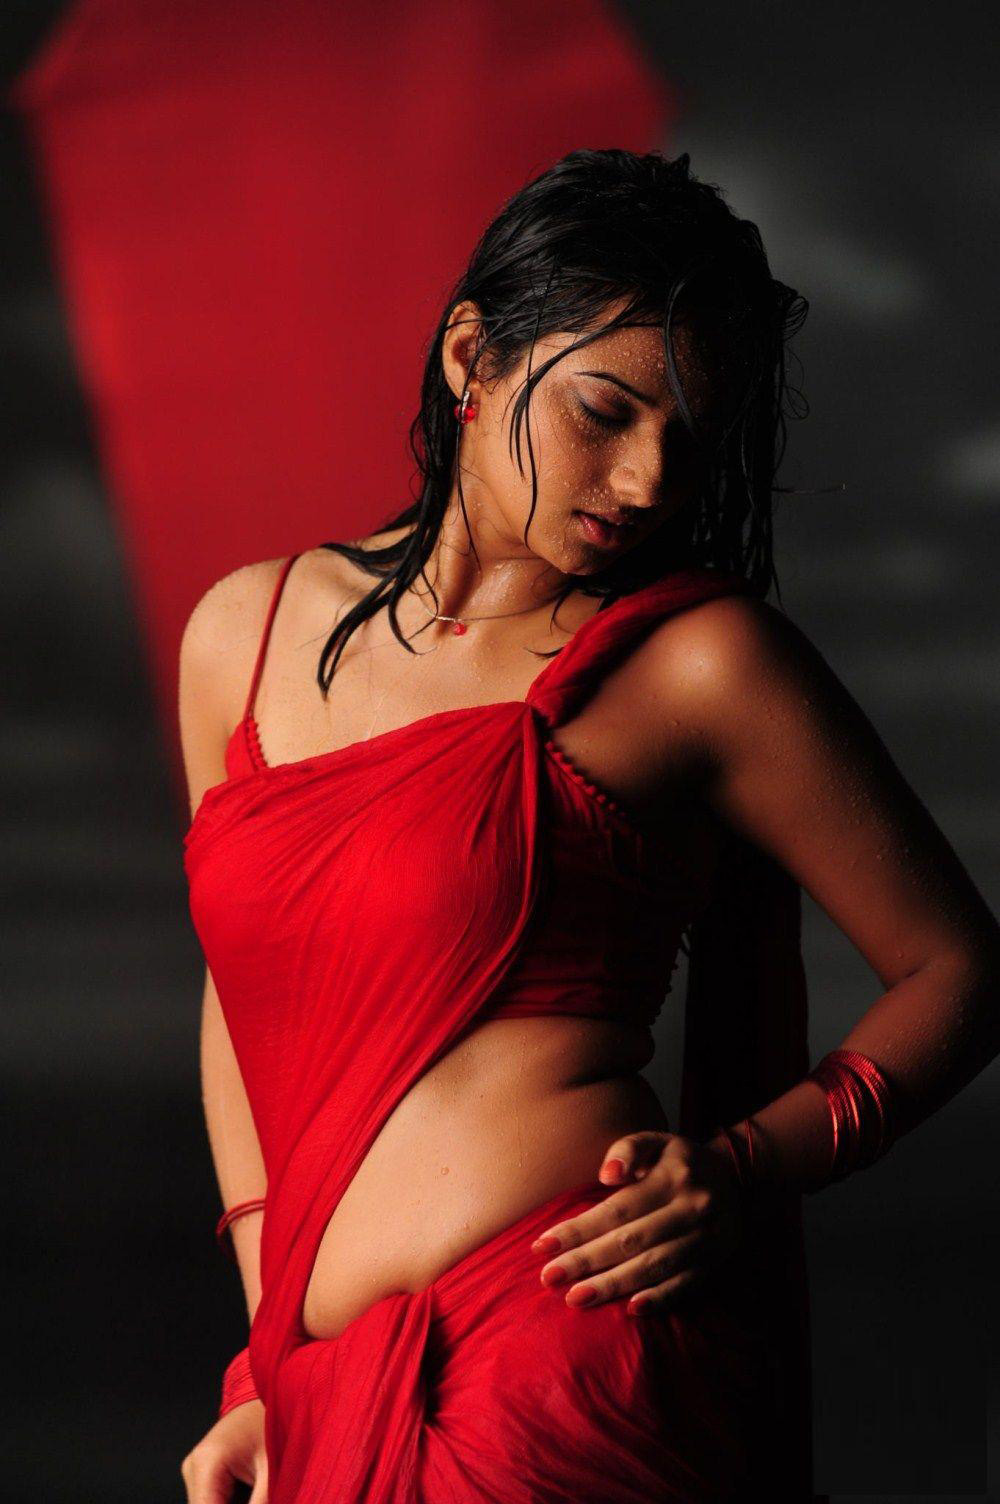 slits-saxy-hot-indian-girls-young-porn